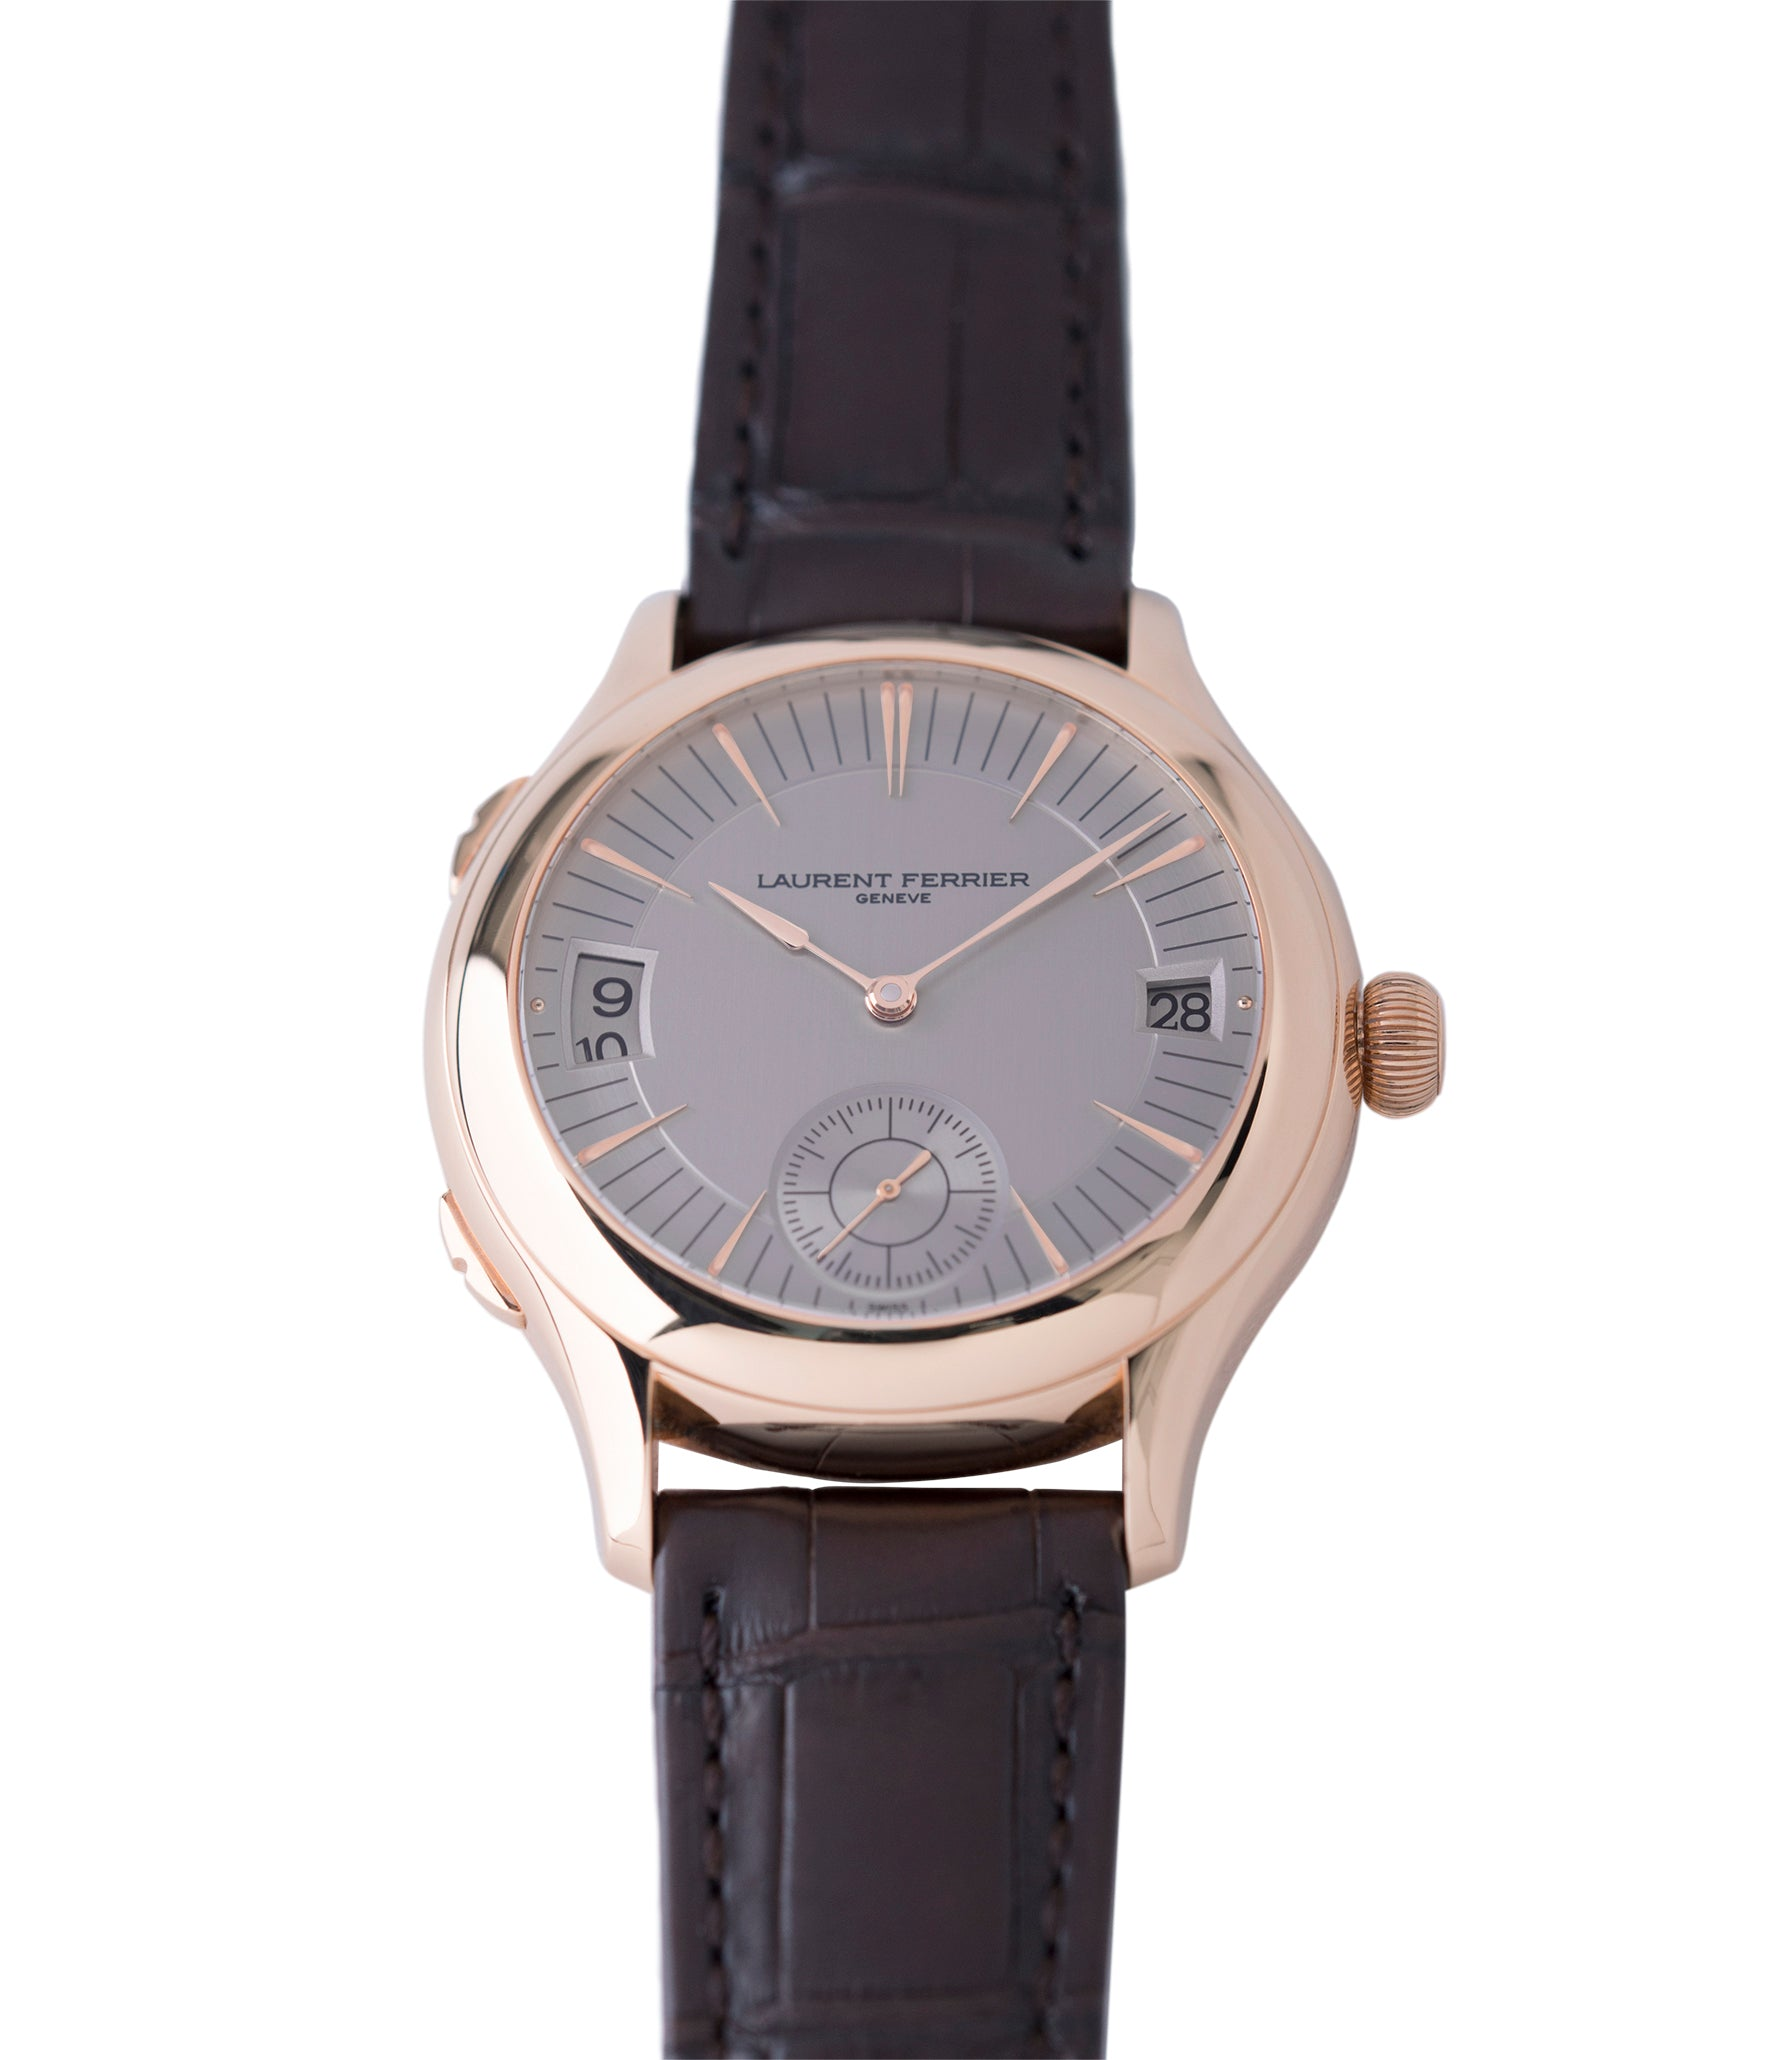 buy rose gold Laurent Ferrier Galet Traveller Micro Rotor LF 230.01 rose gold watch additional prototype dial for sale online at A Collected Man London UK approved reseller of preowned independent watchmakers